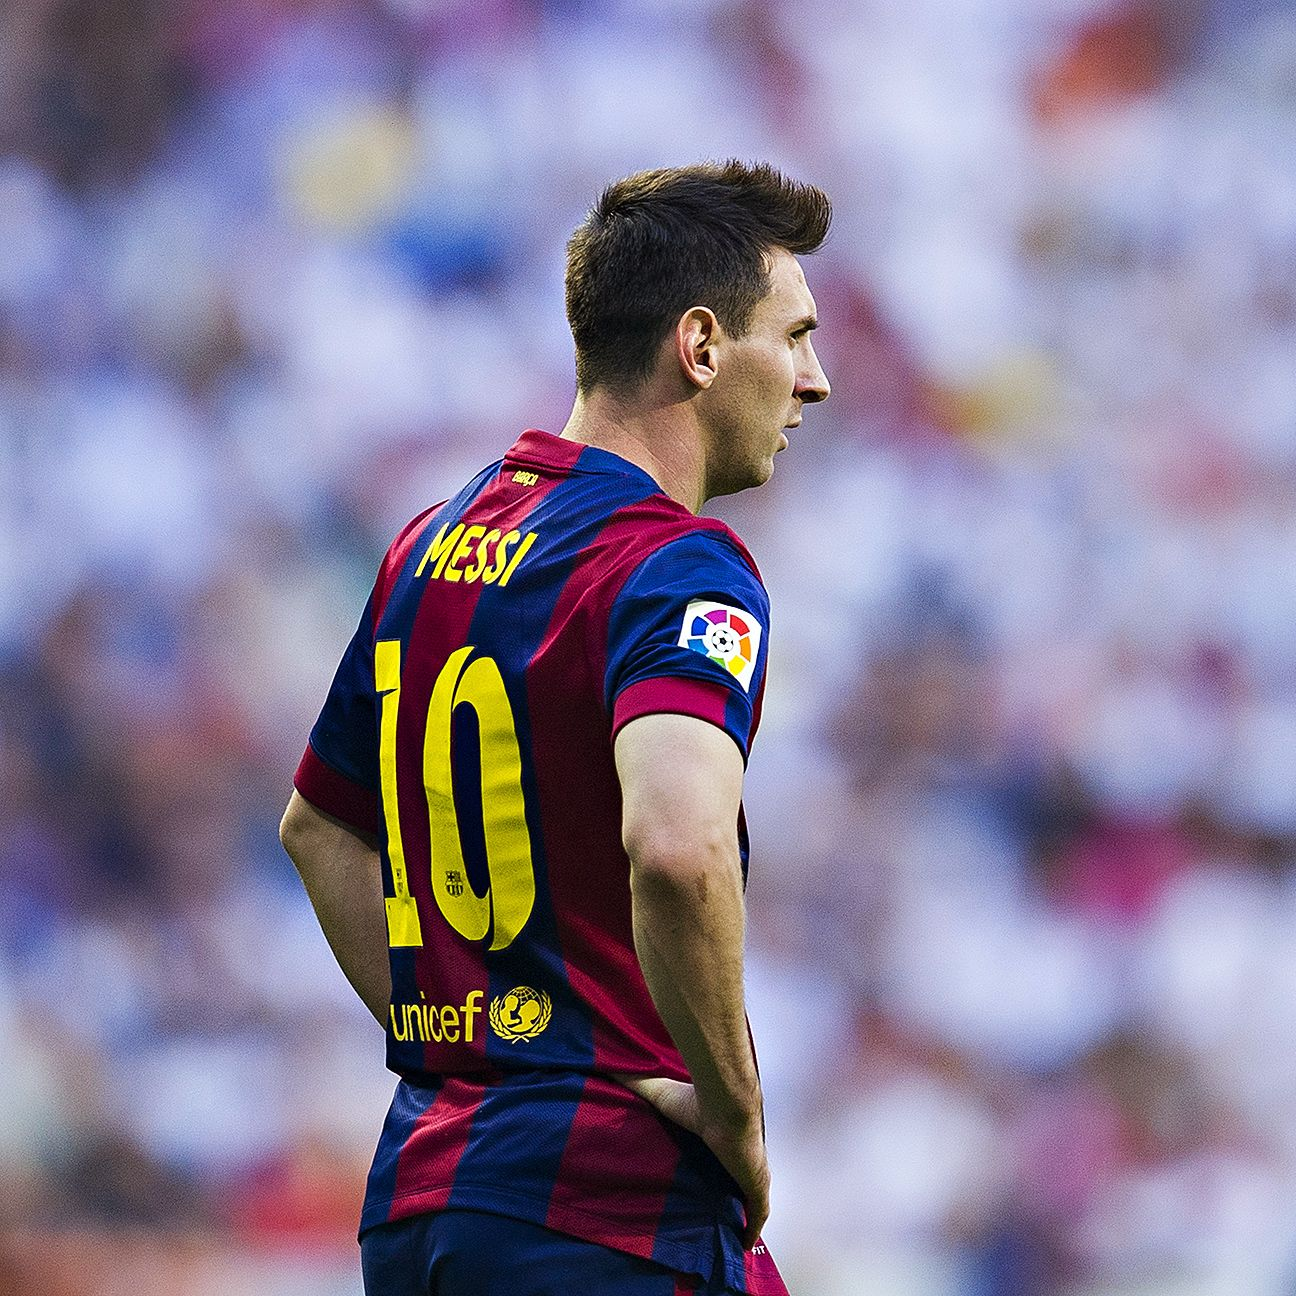 For the first time ever, some doubt has been cast on Lionel Messi's future at Barcelona.